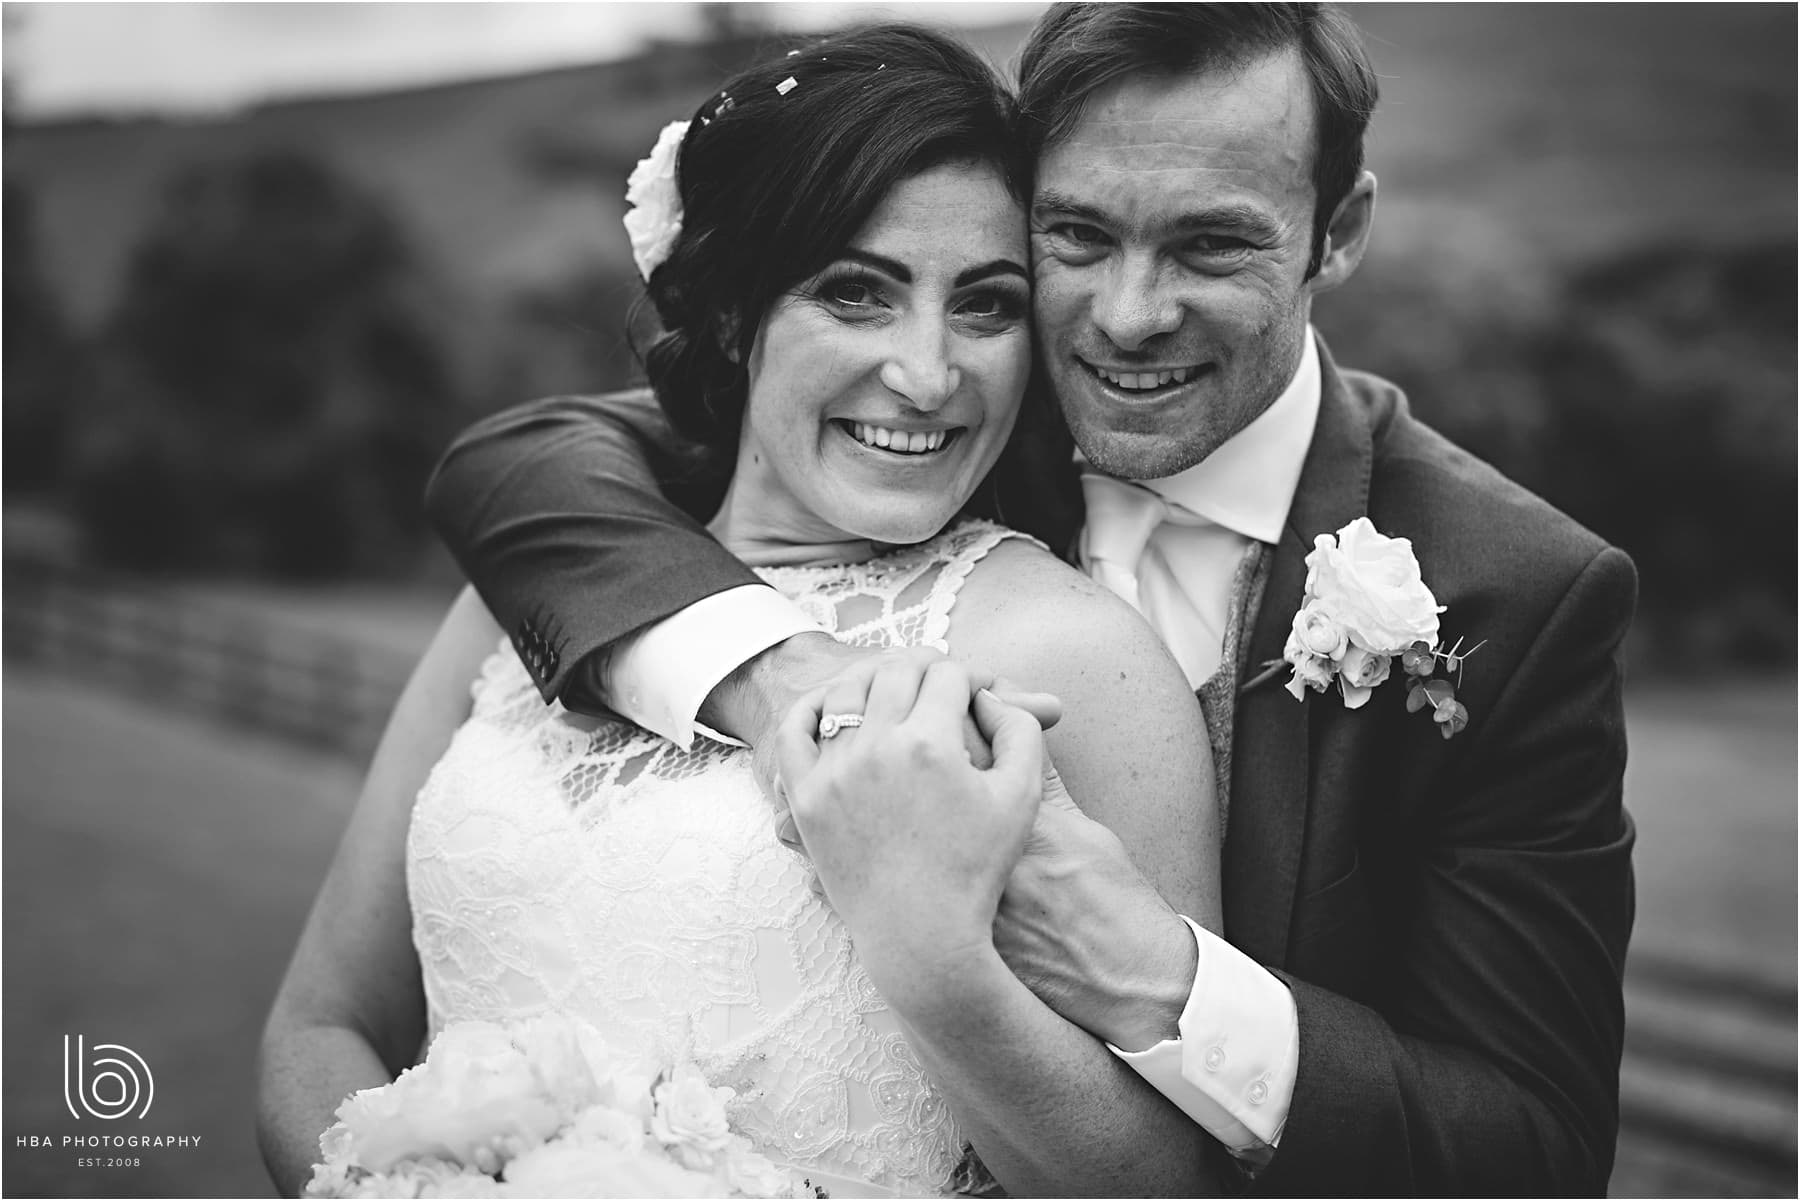 the bride and groom in black & white